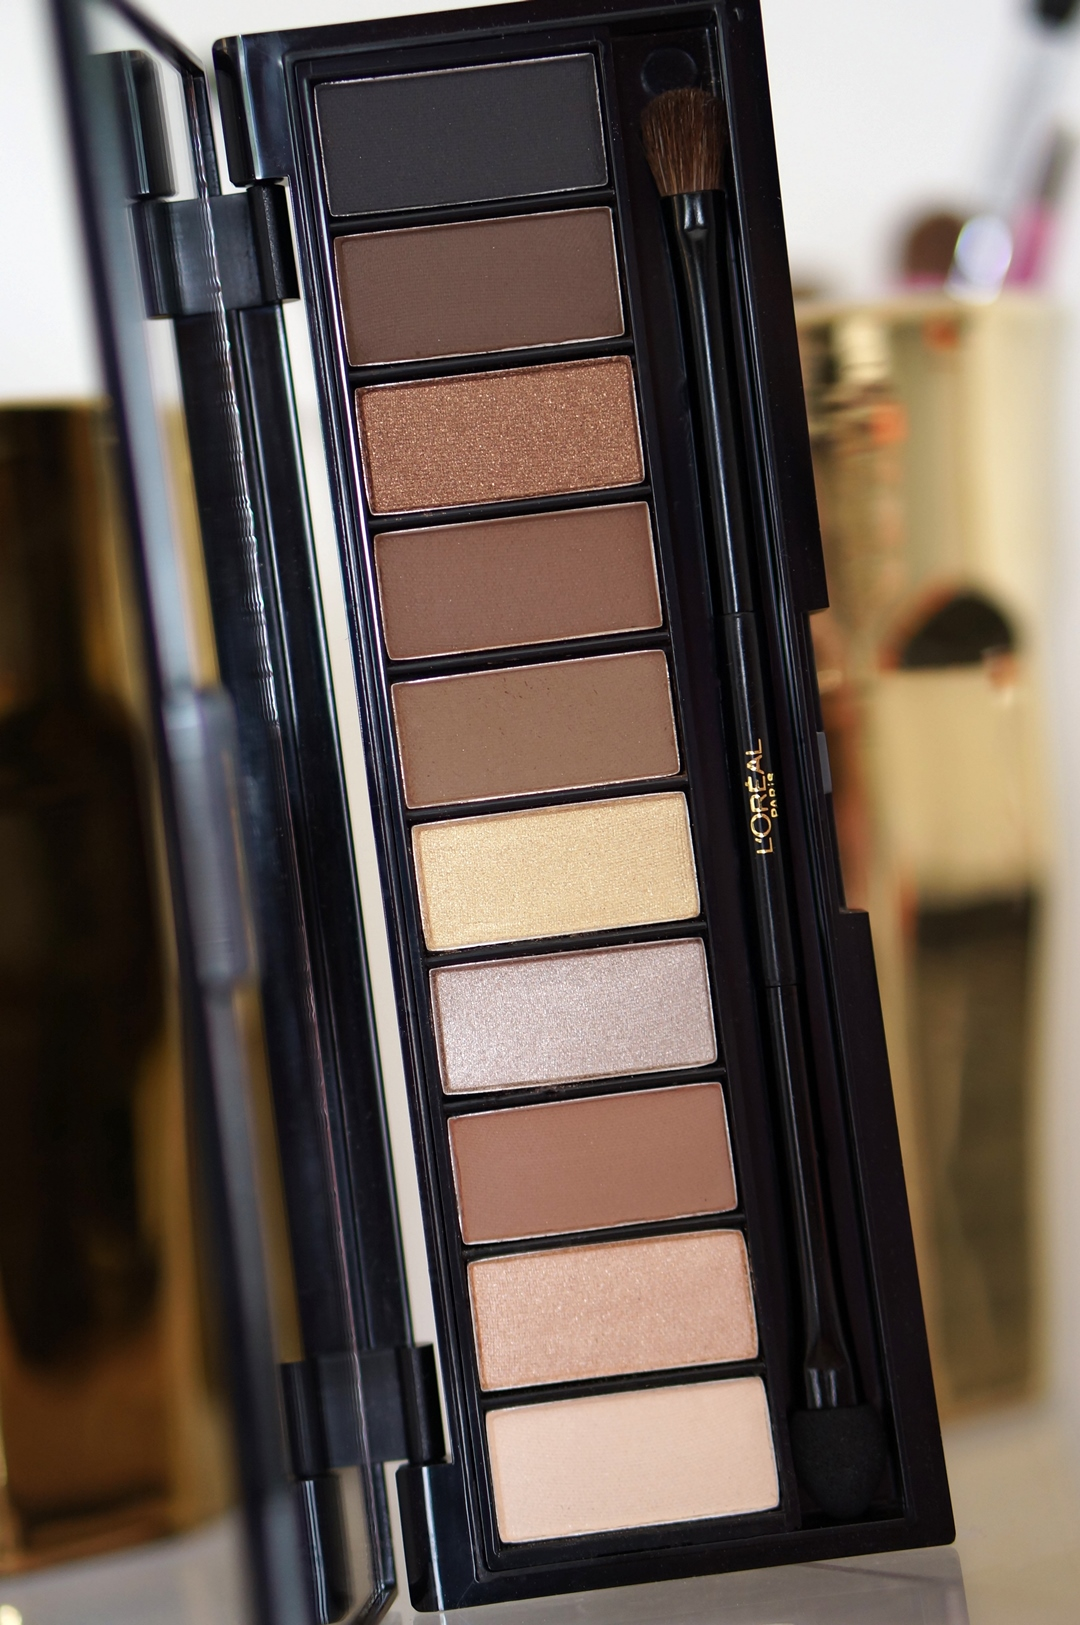 L'oreal-la-palette-nude-swatches-look-review (5)